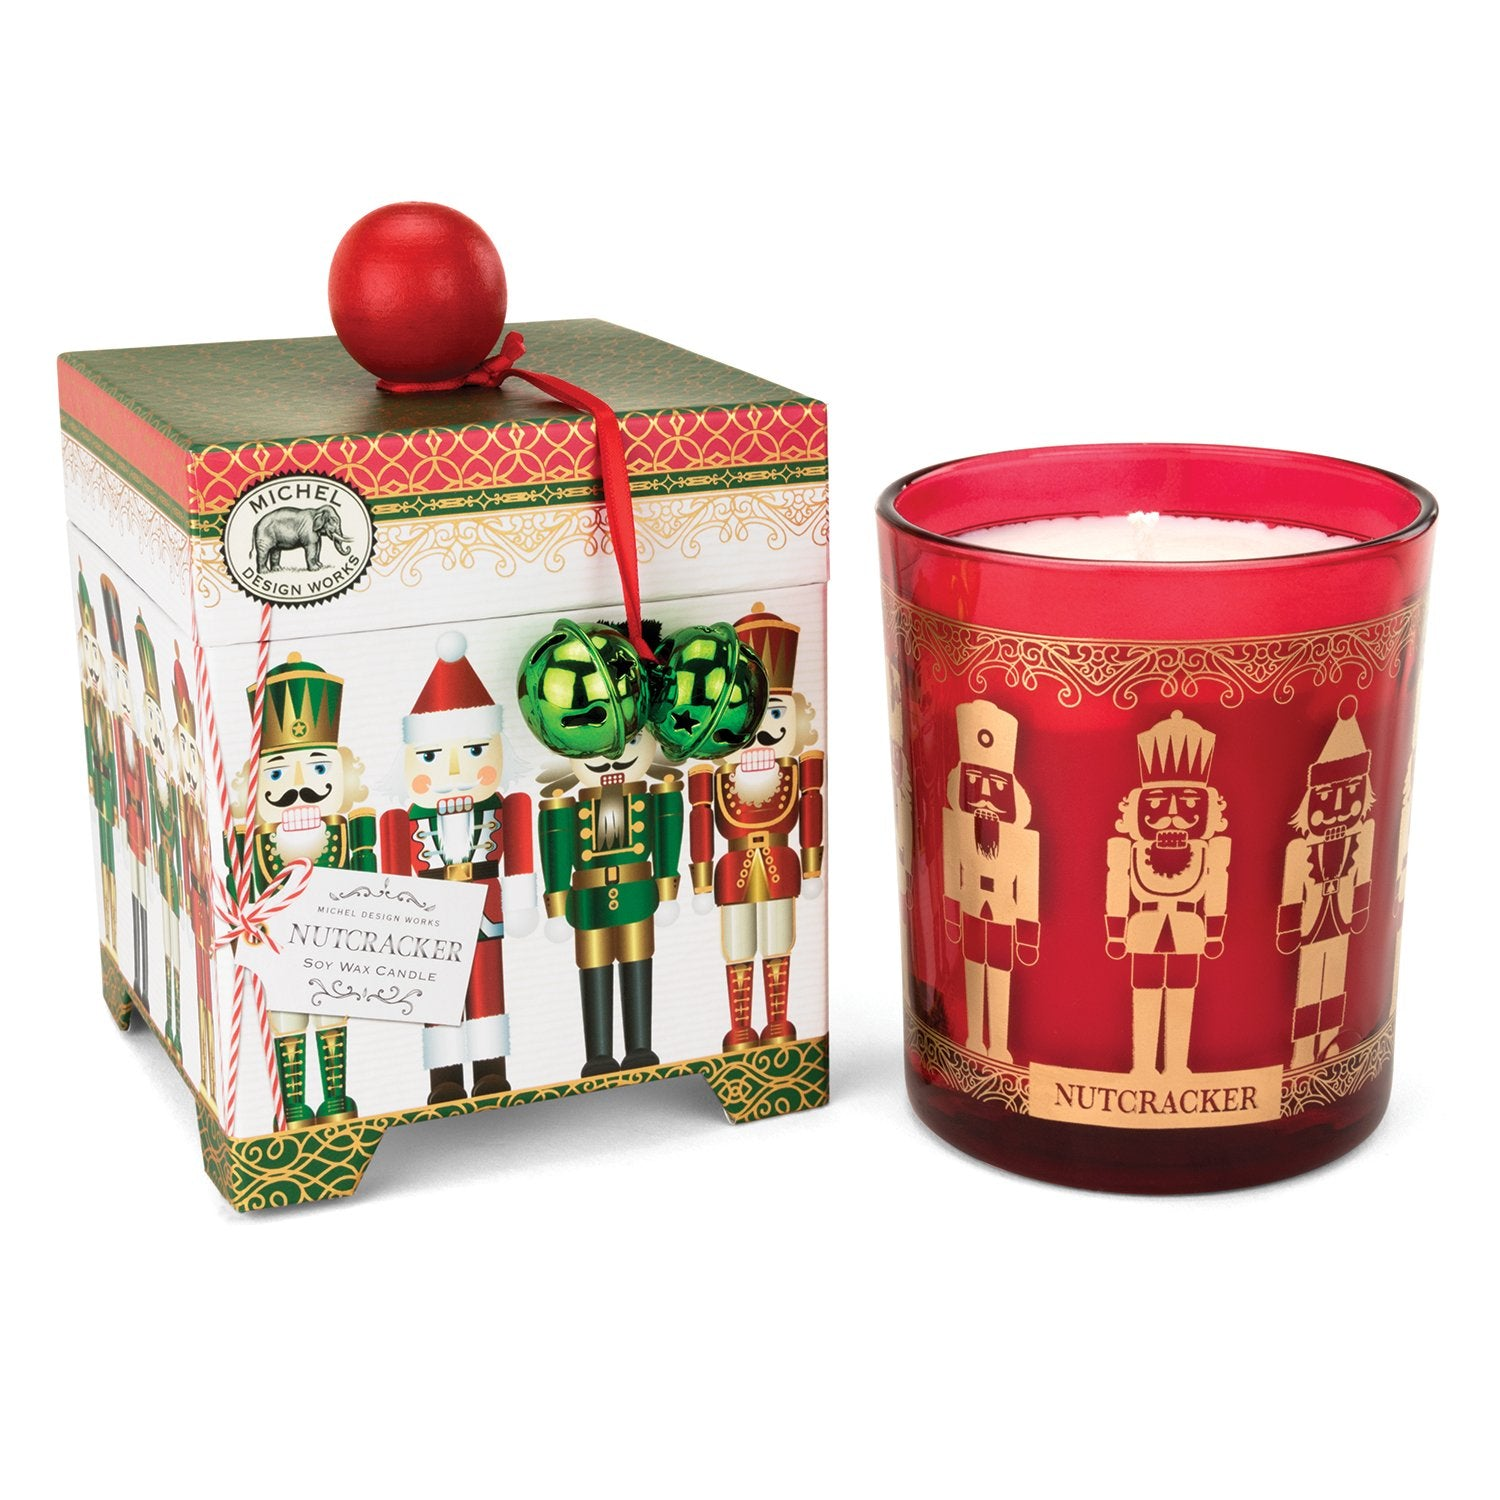 Nutcracker 14 oz. Soy Wax Candle